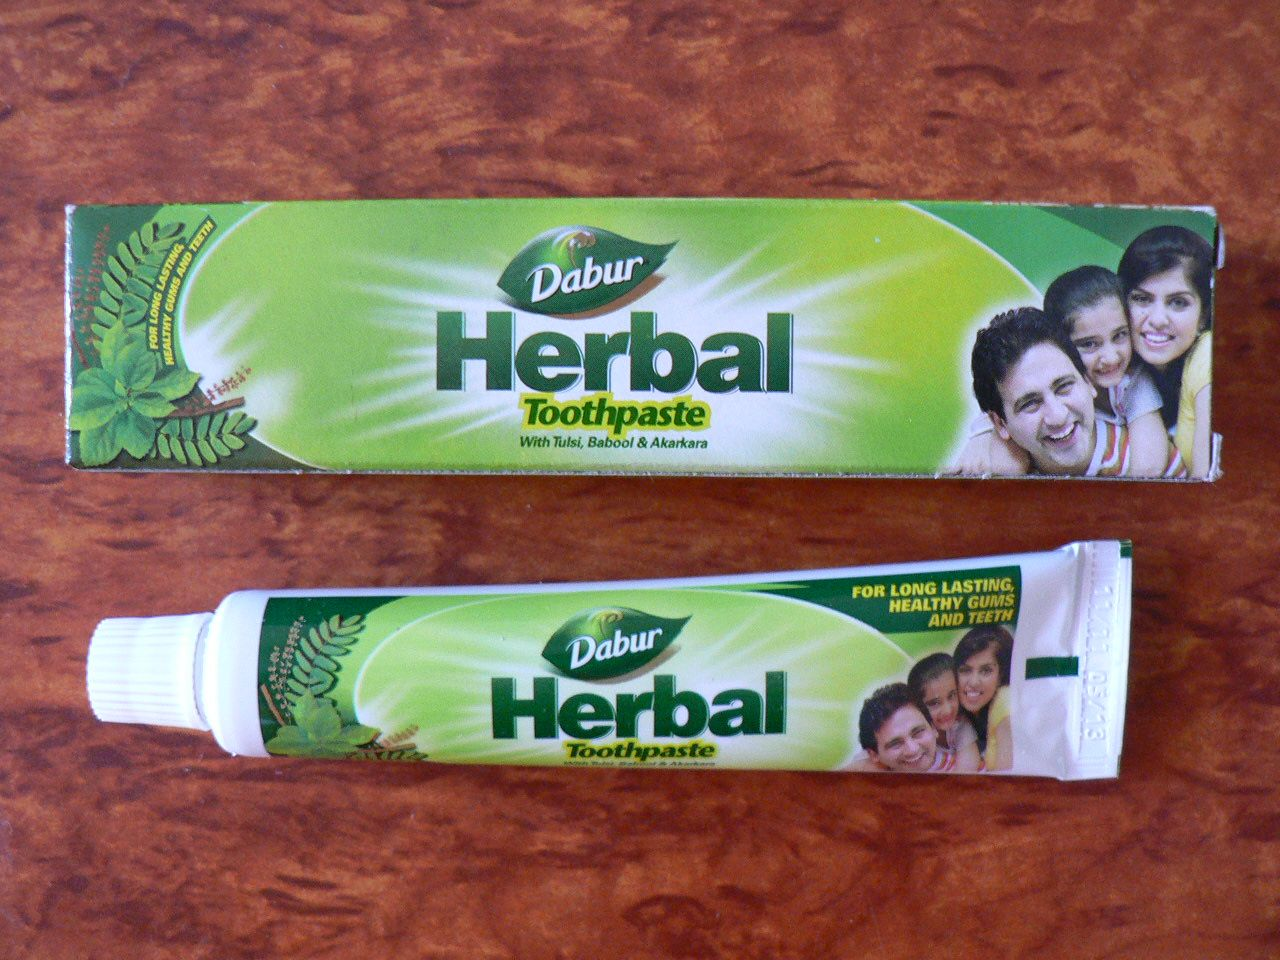 <b>HERBAL TOOTH PASTE - DABUR<br></b>Herbal toothpaste - Dabur<BR>tube of 50 grs